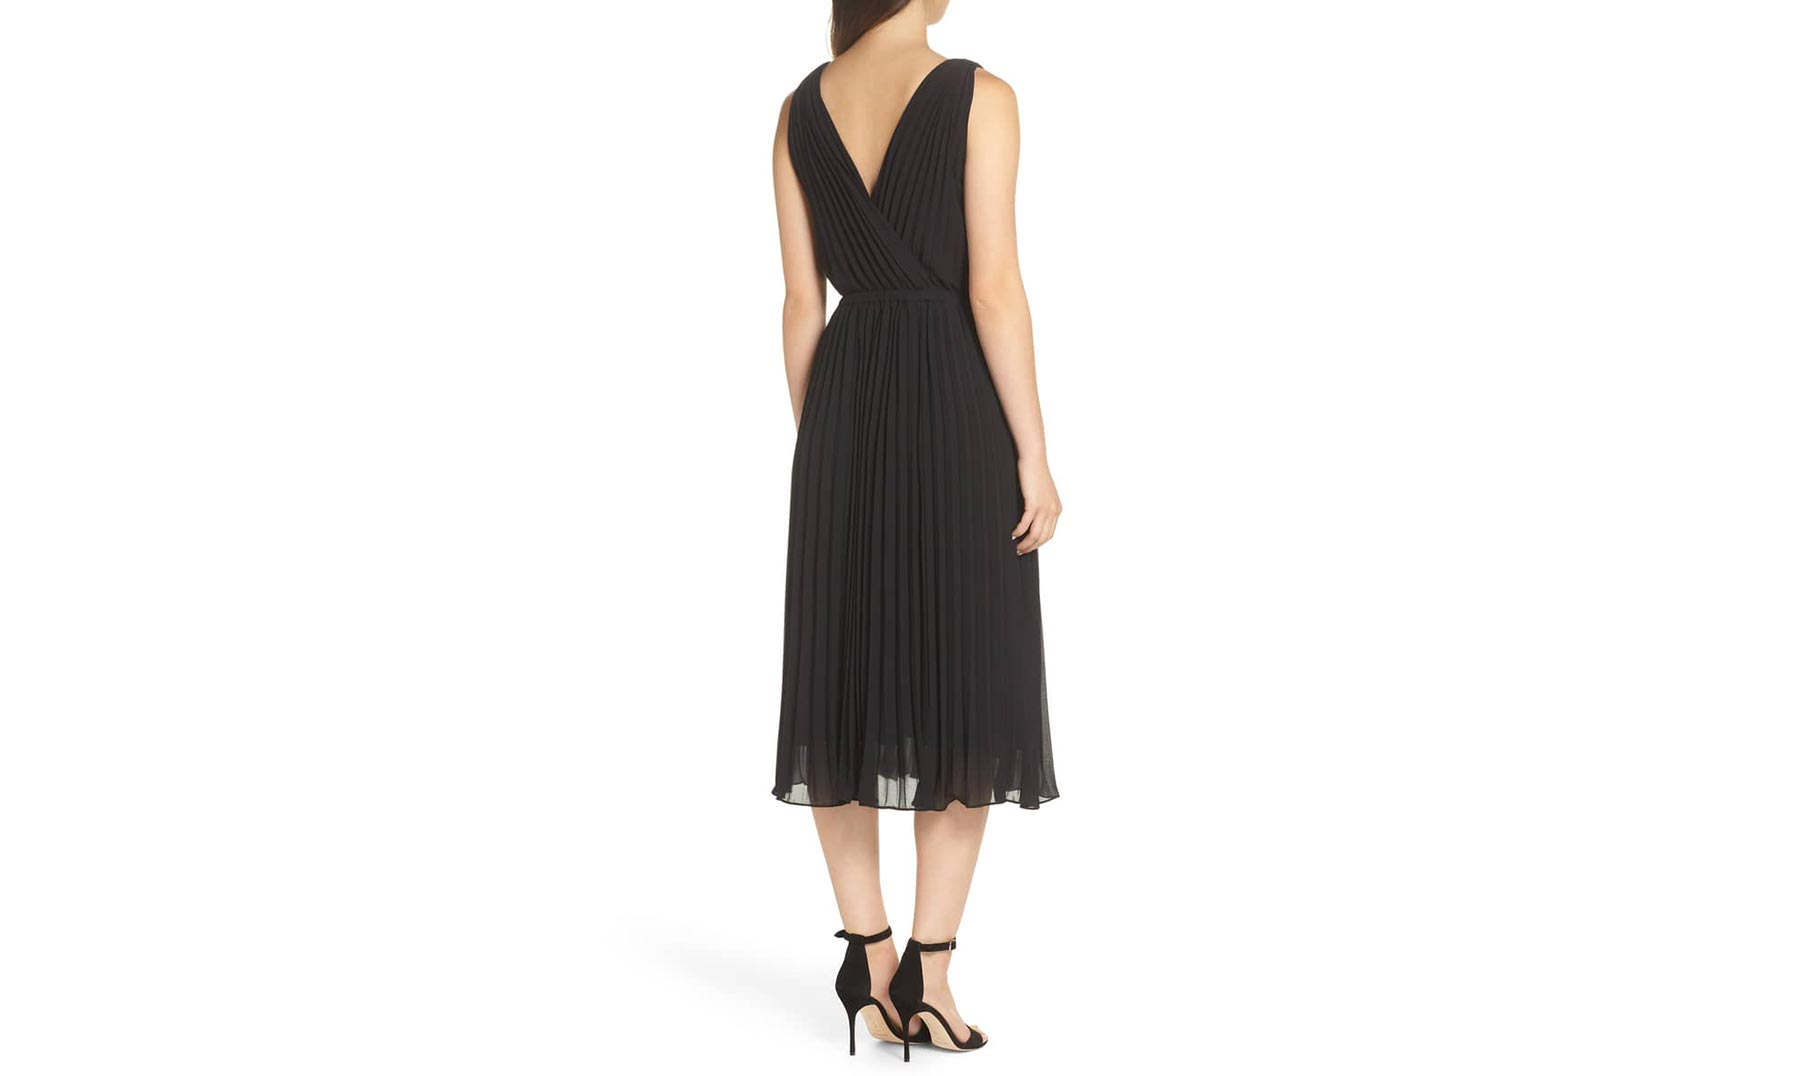 19 Cooper Pleated A-Line Dress